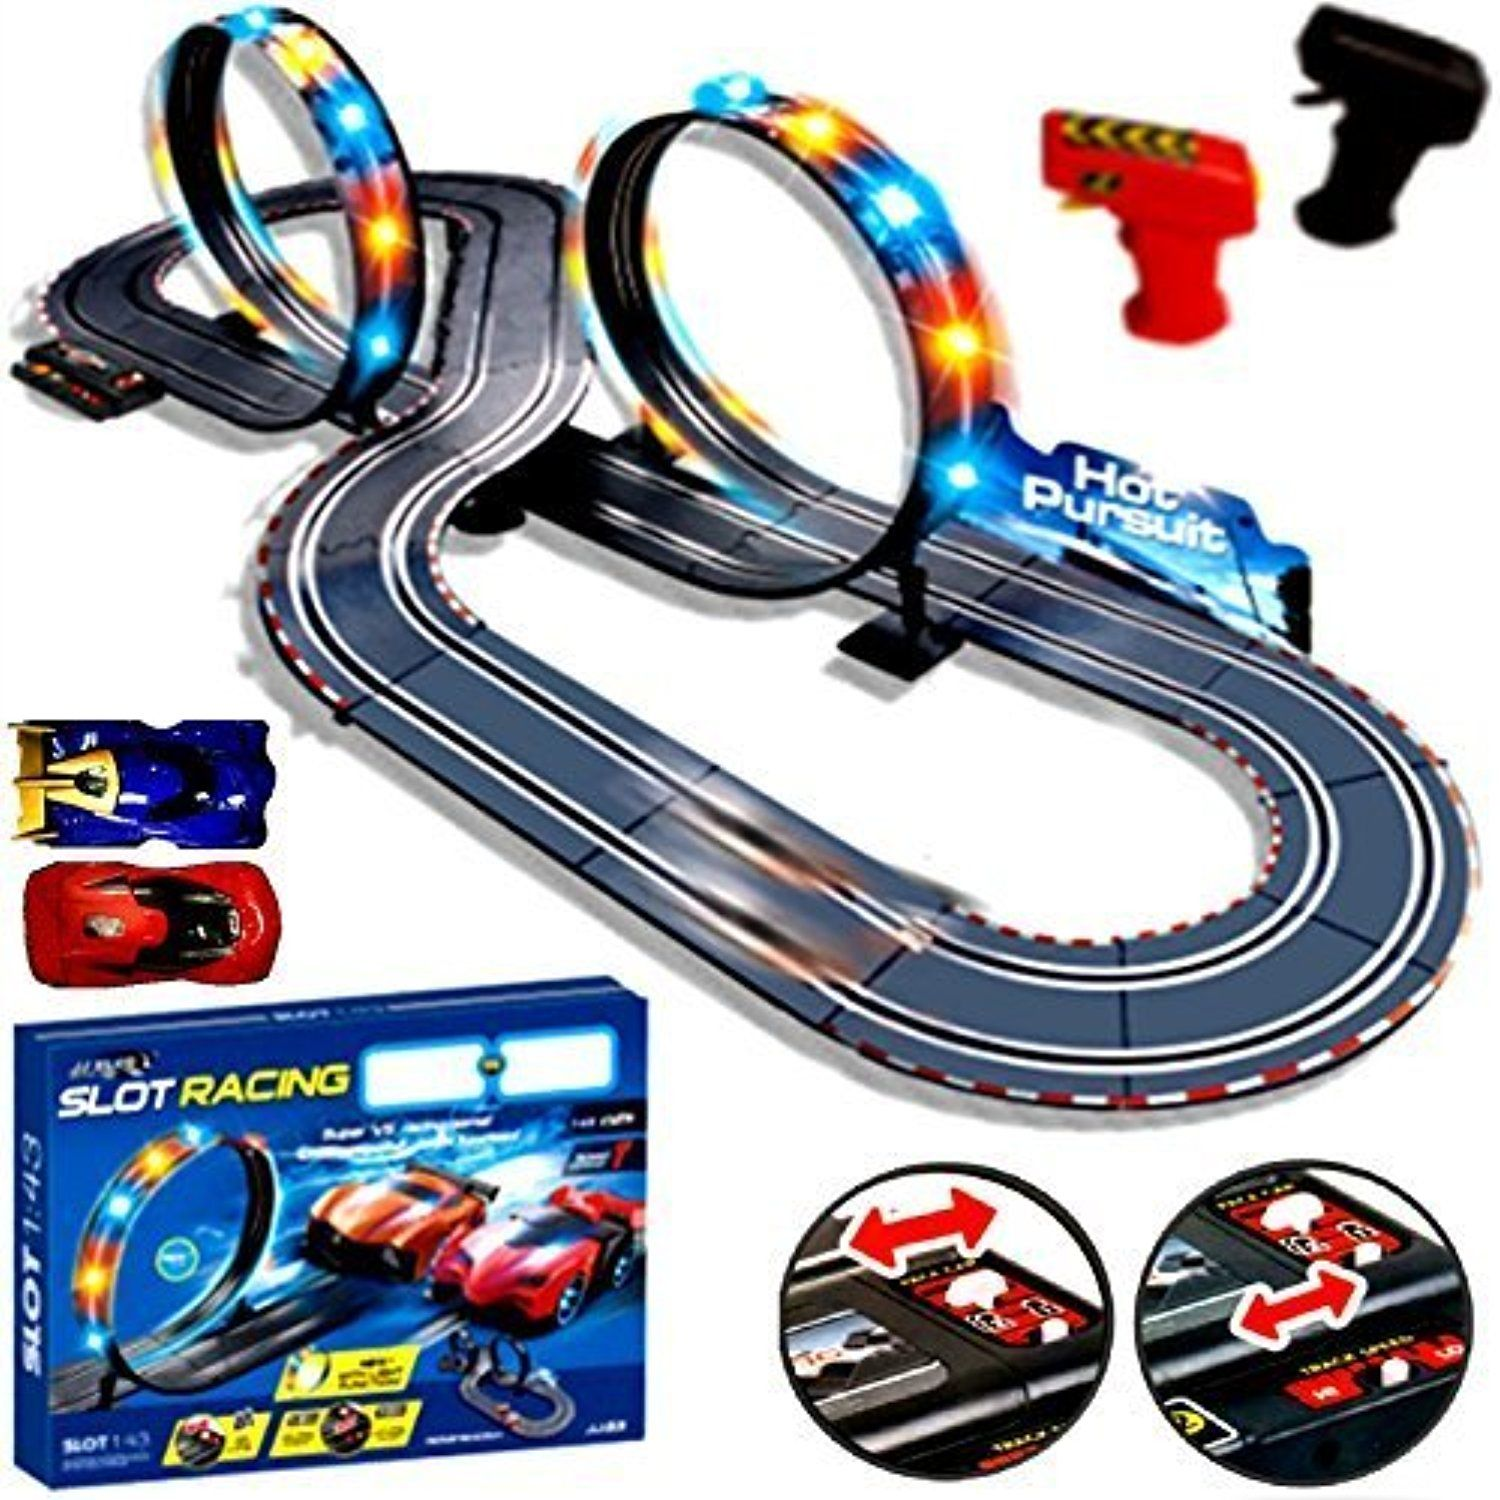 New Remote Control Light Up Slot Car Racing track Kids Toy